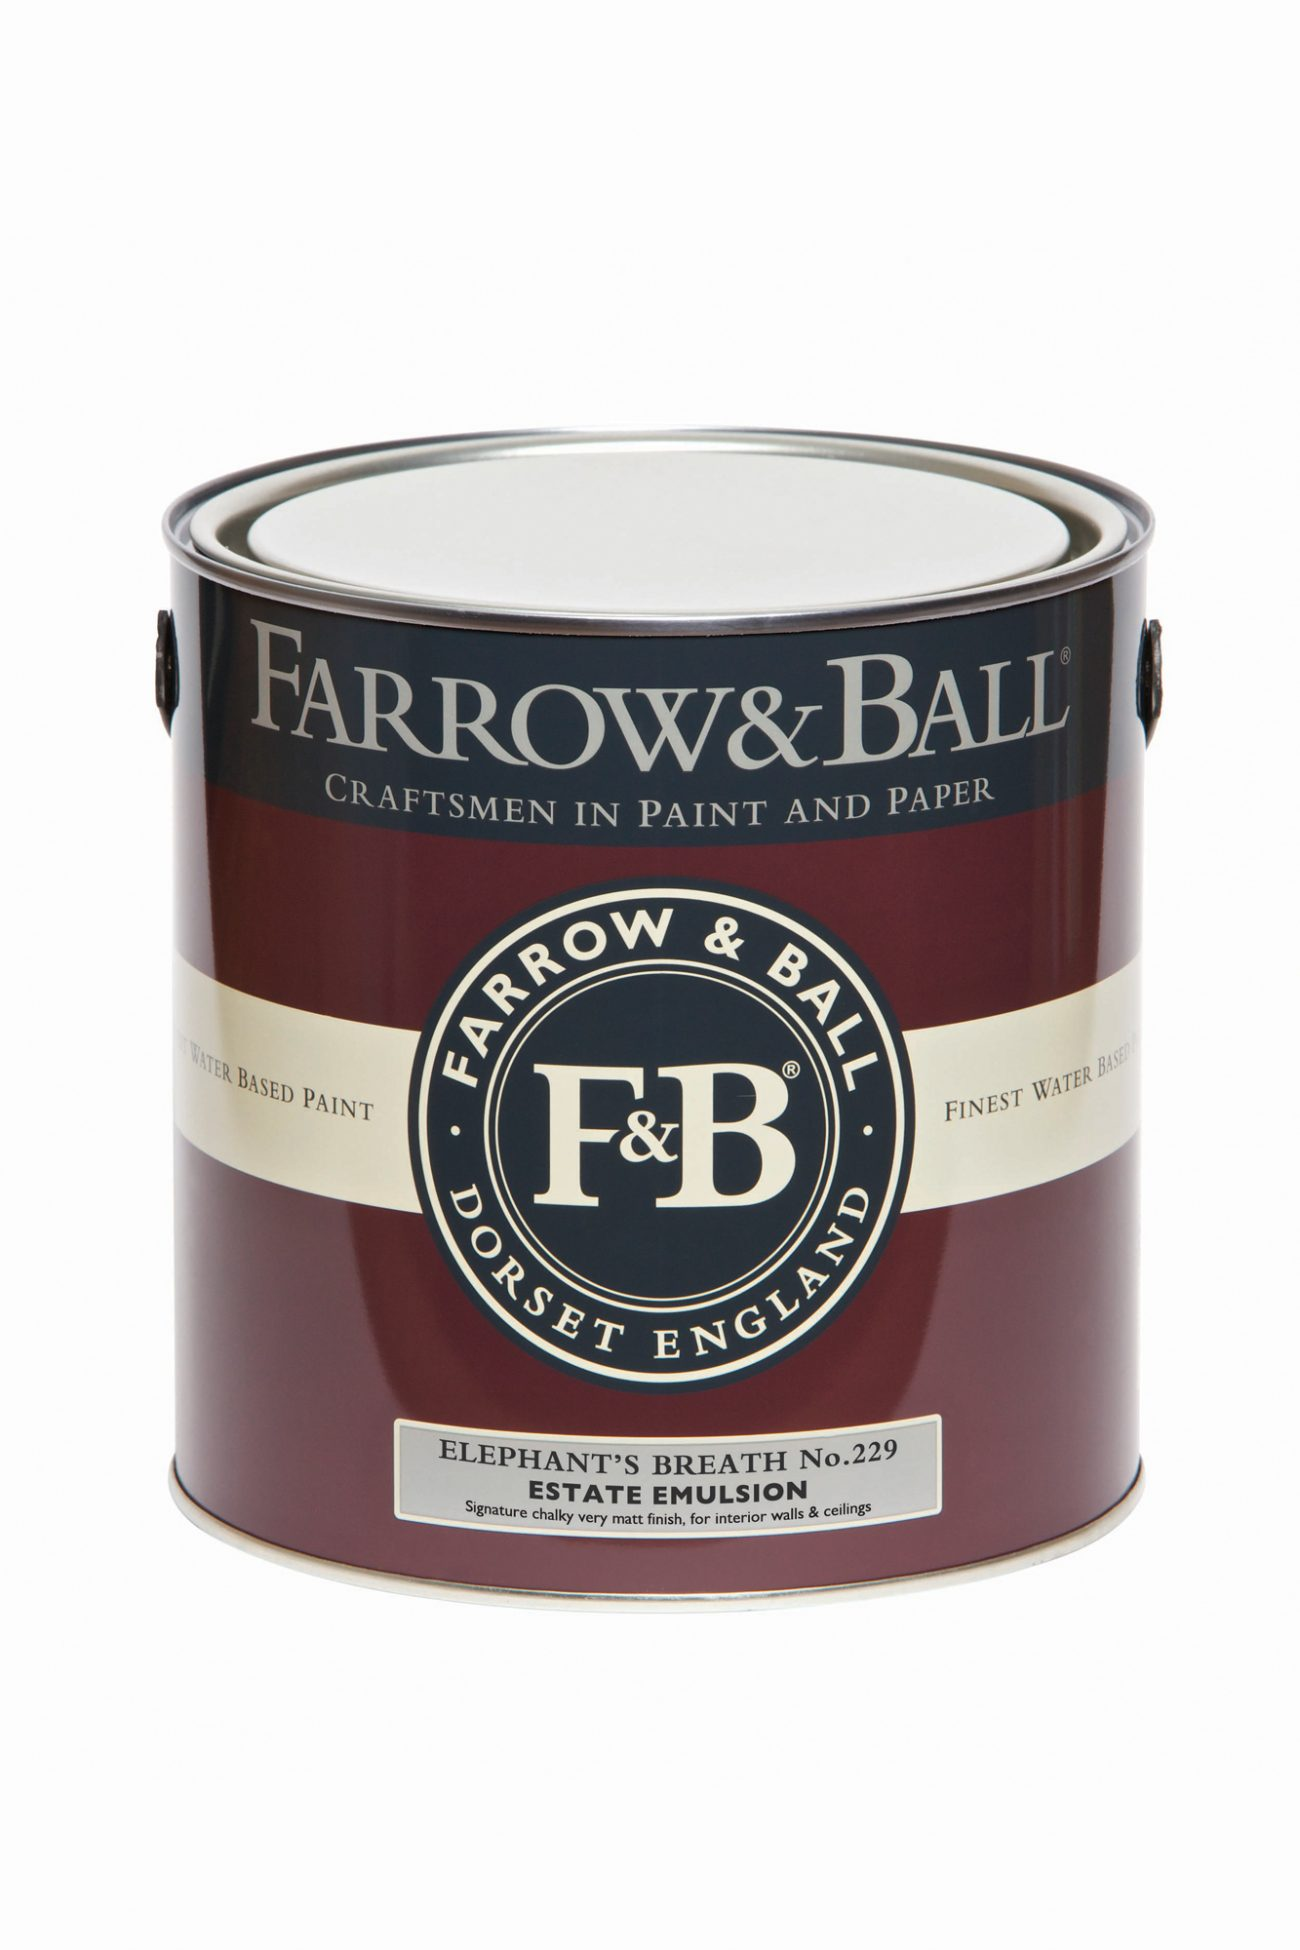 FARROW & BALL PAINT FINISHES